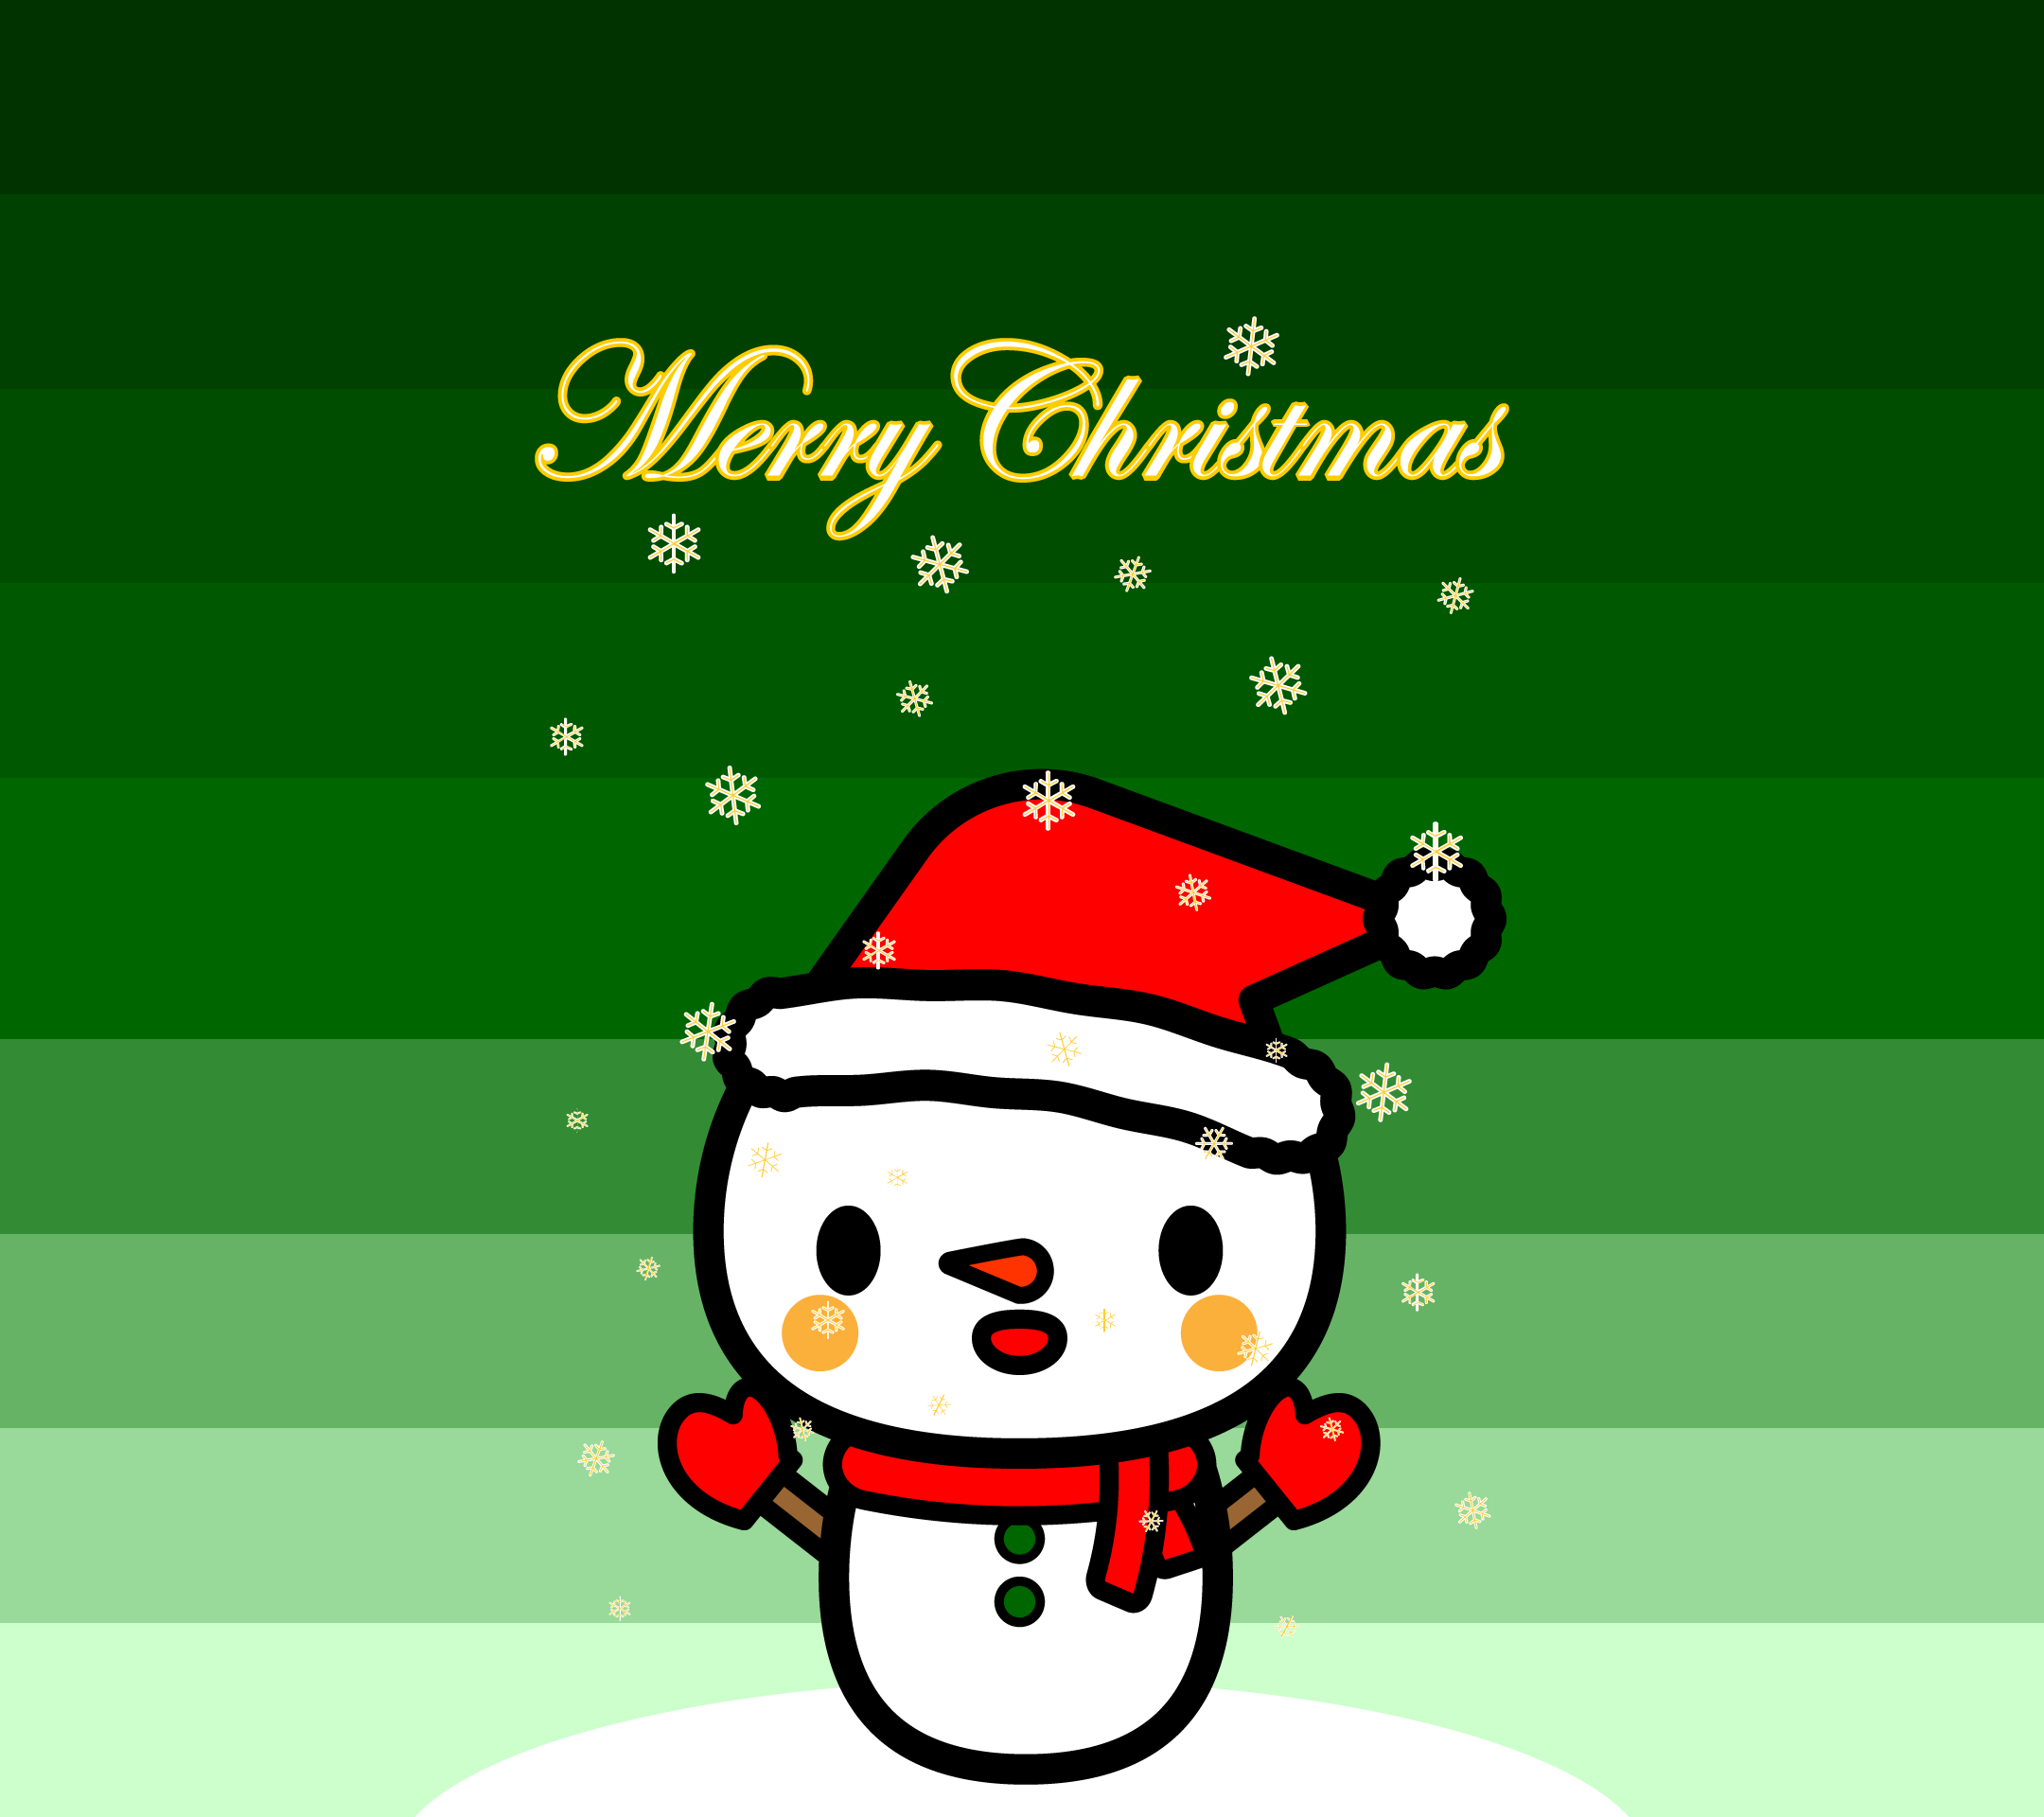 wallpaper6_christmas-snowman-green-android